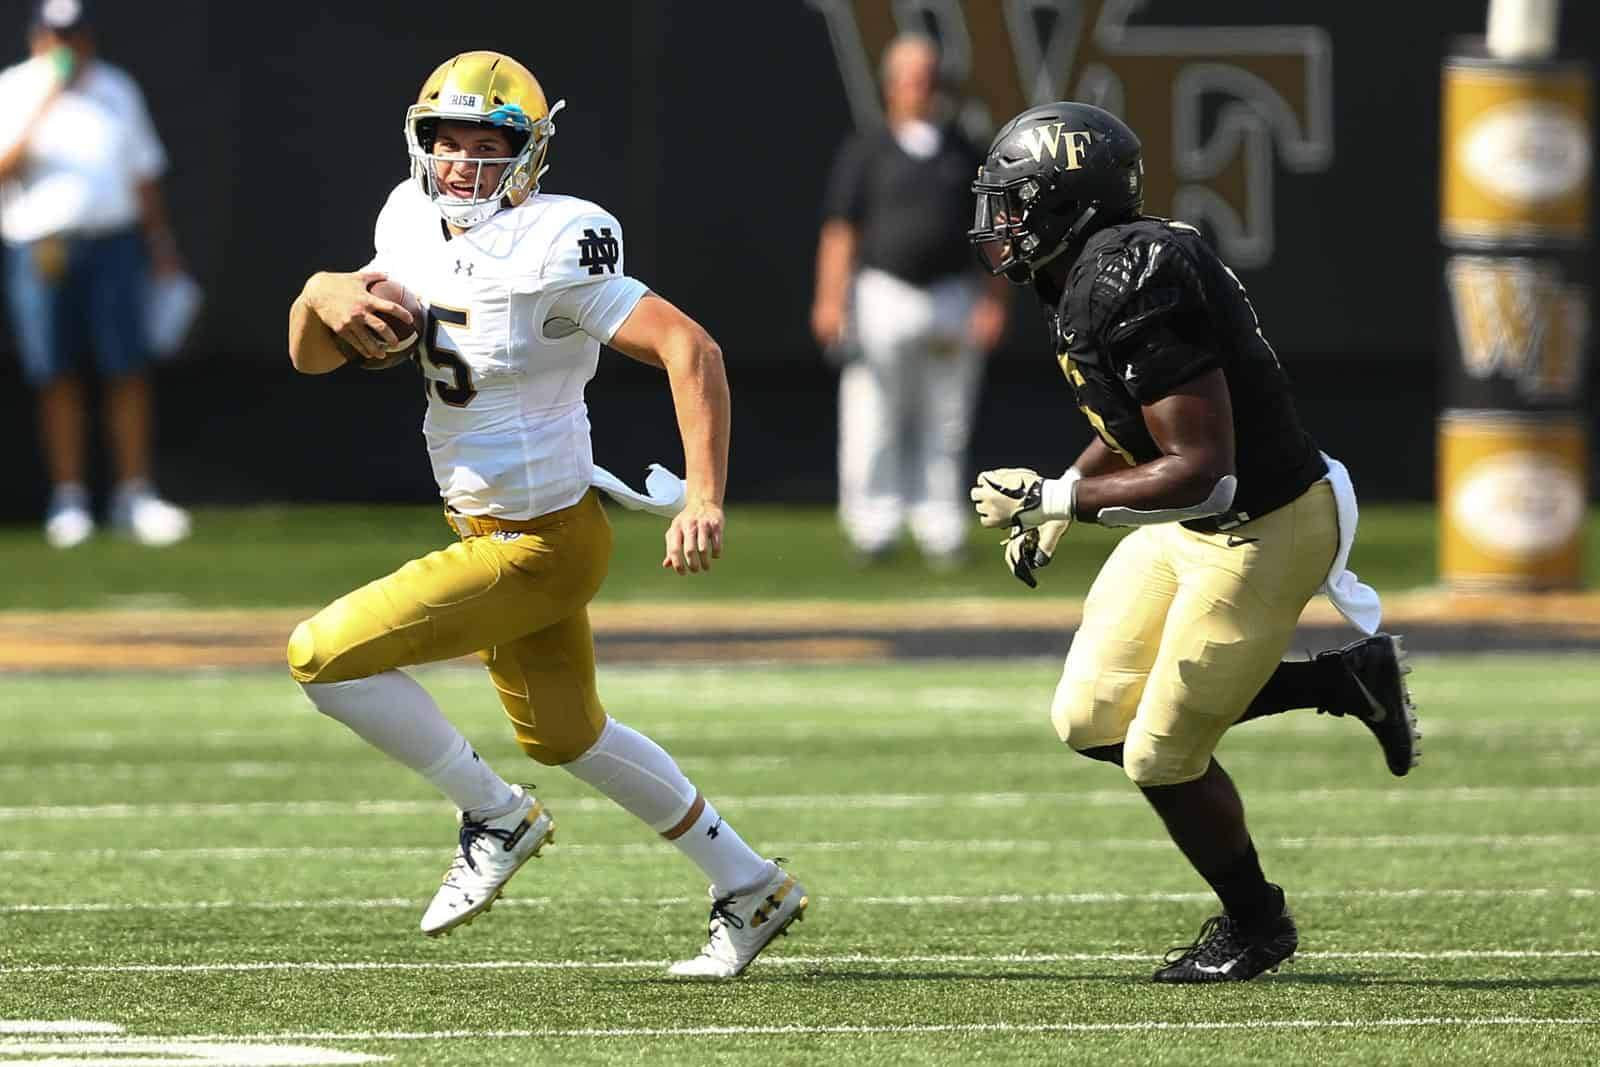 Notre Dame-Wake Forest football game postponed amid COVID-19 outbreak